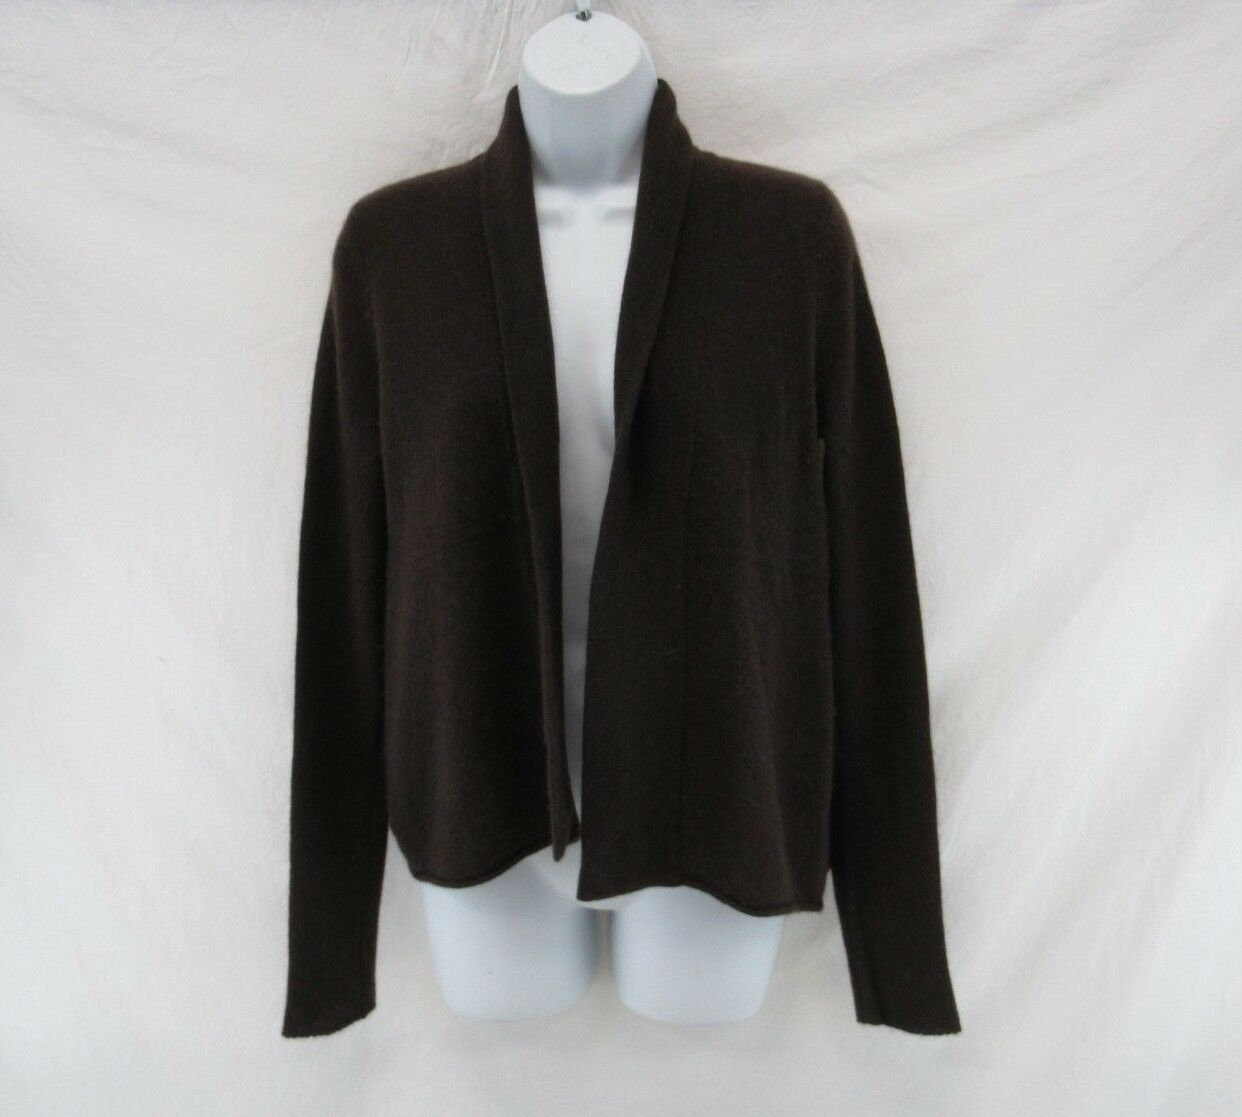 White+Warren 100% Cashmere Brown Open Front Cardigan Sweater Size S  C477